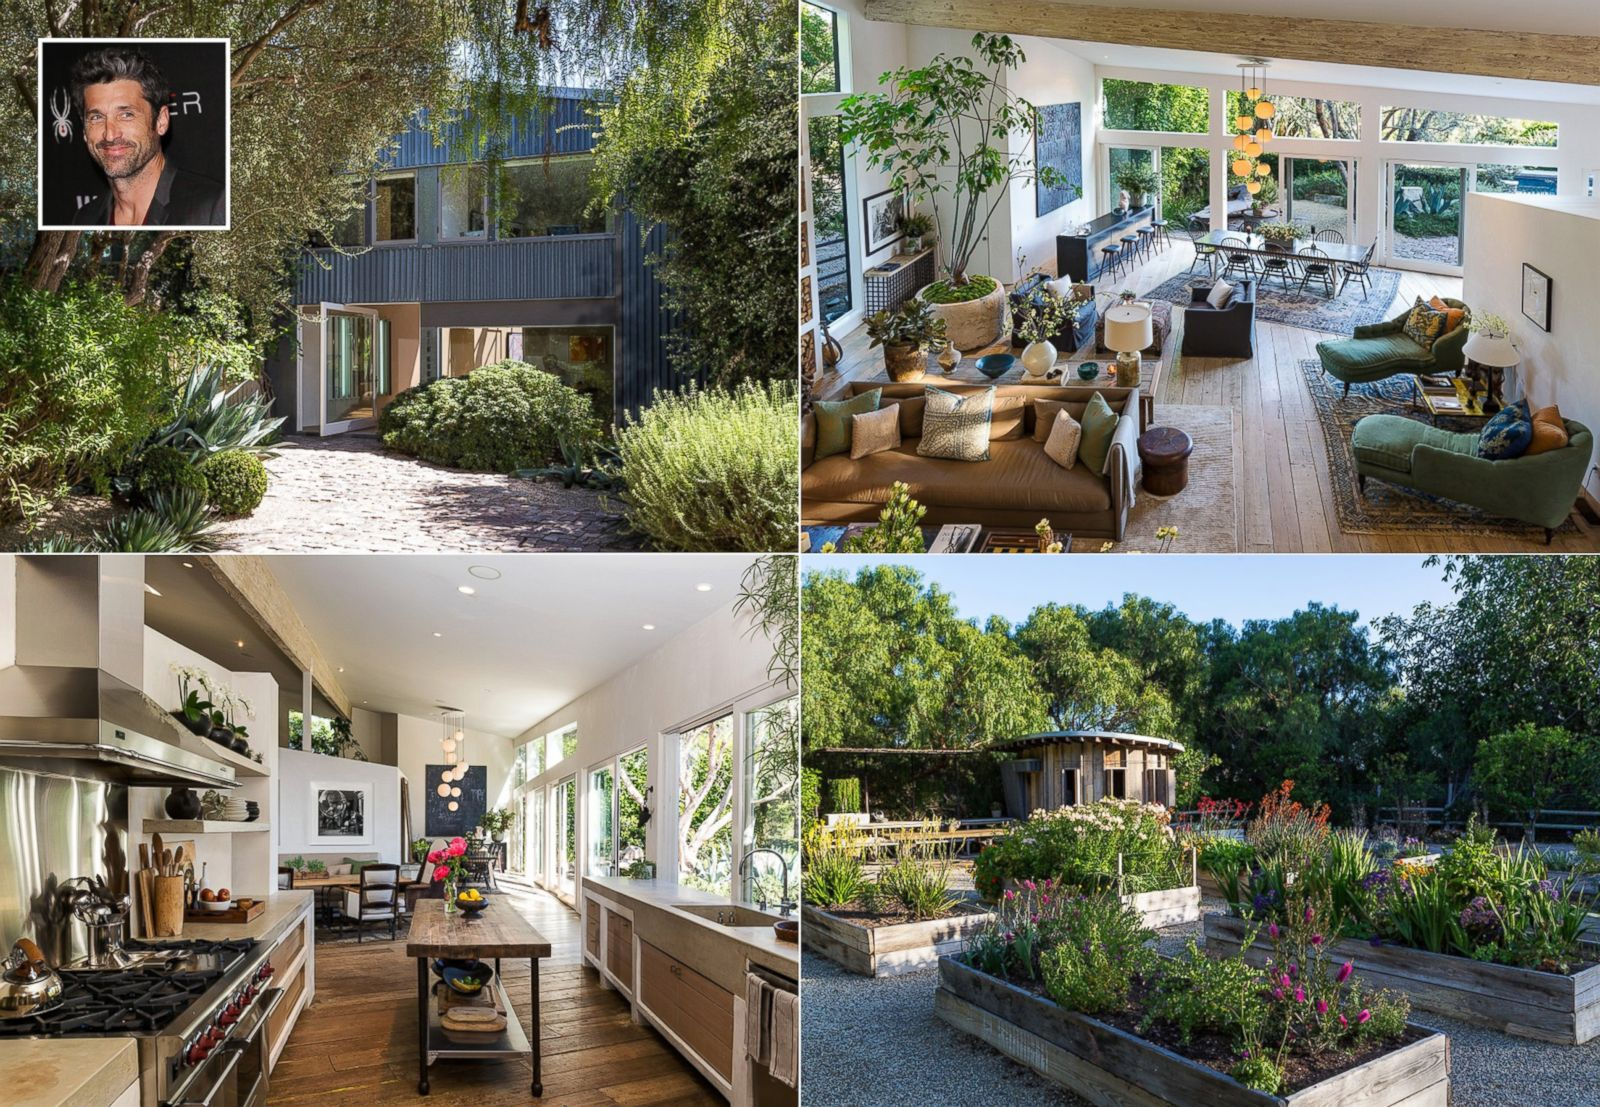 You Can Buy Patrick Dempsey's Home Picture